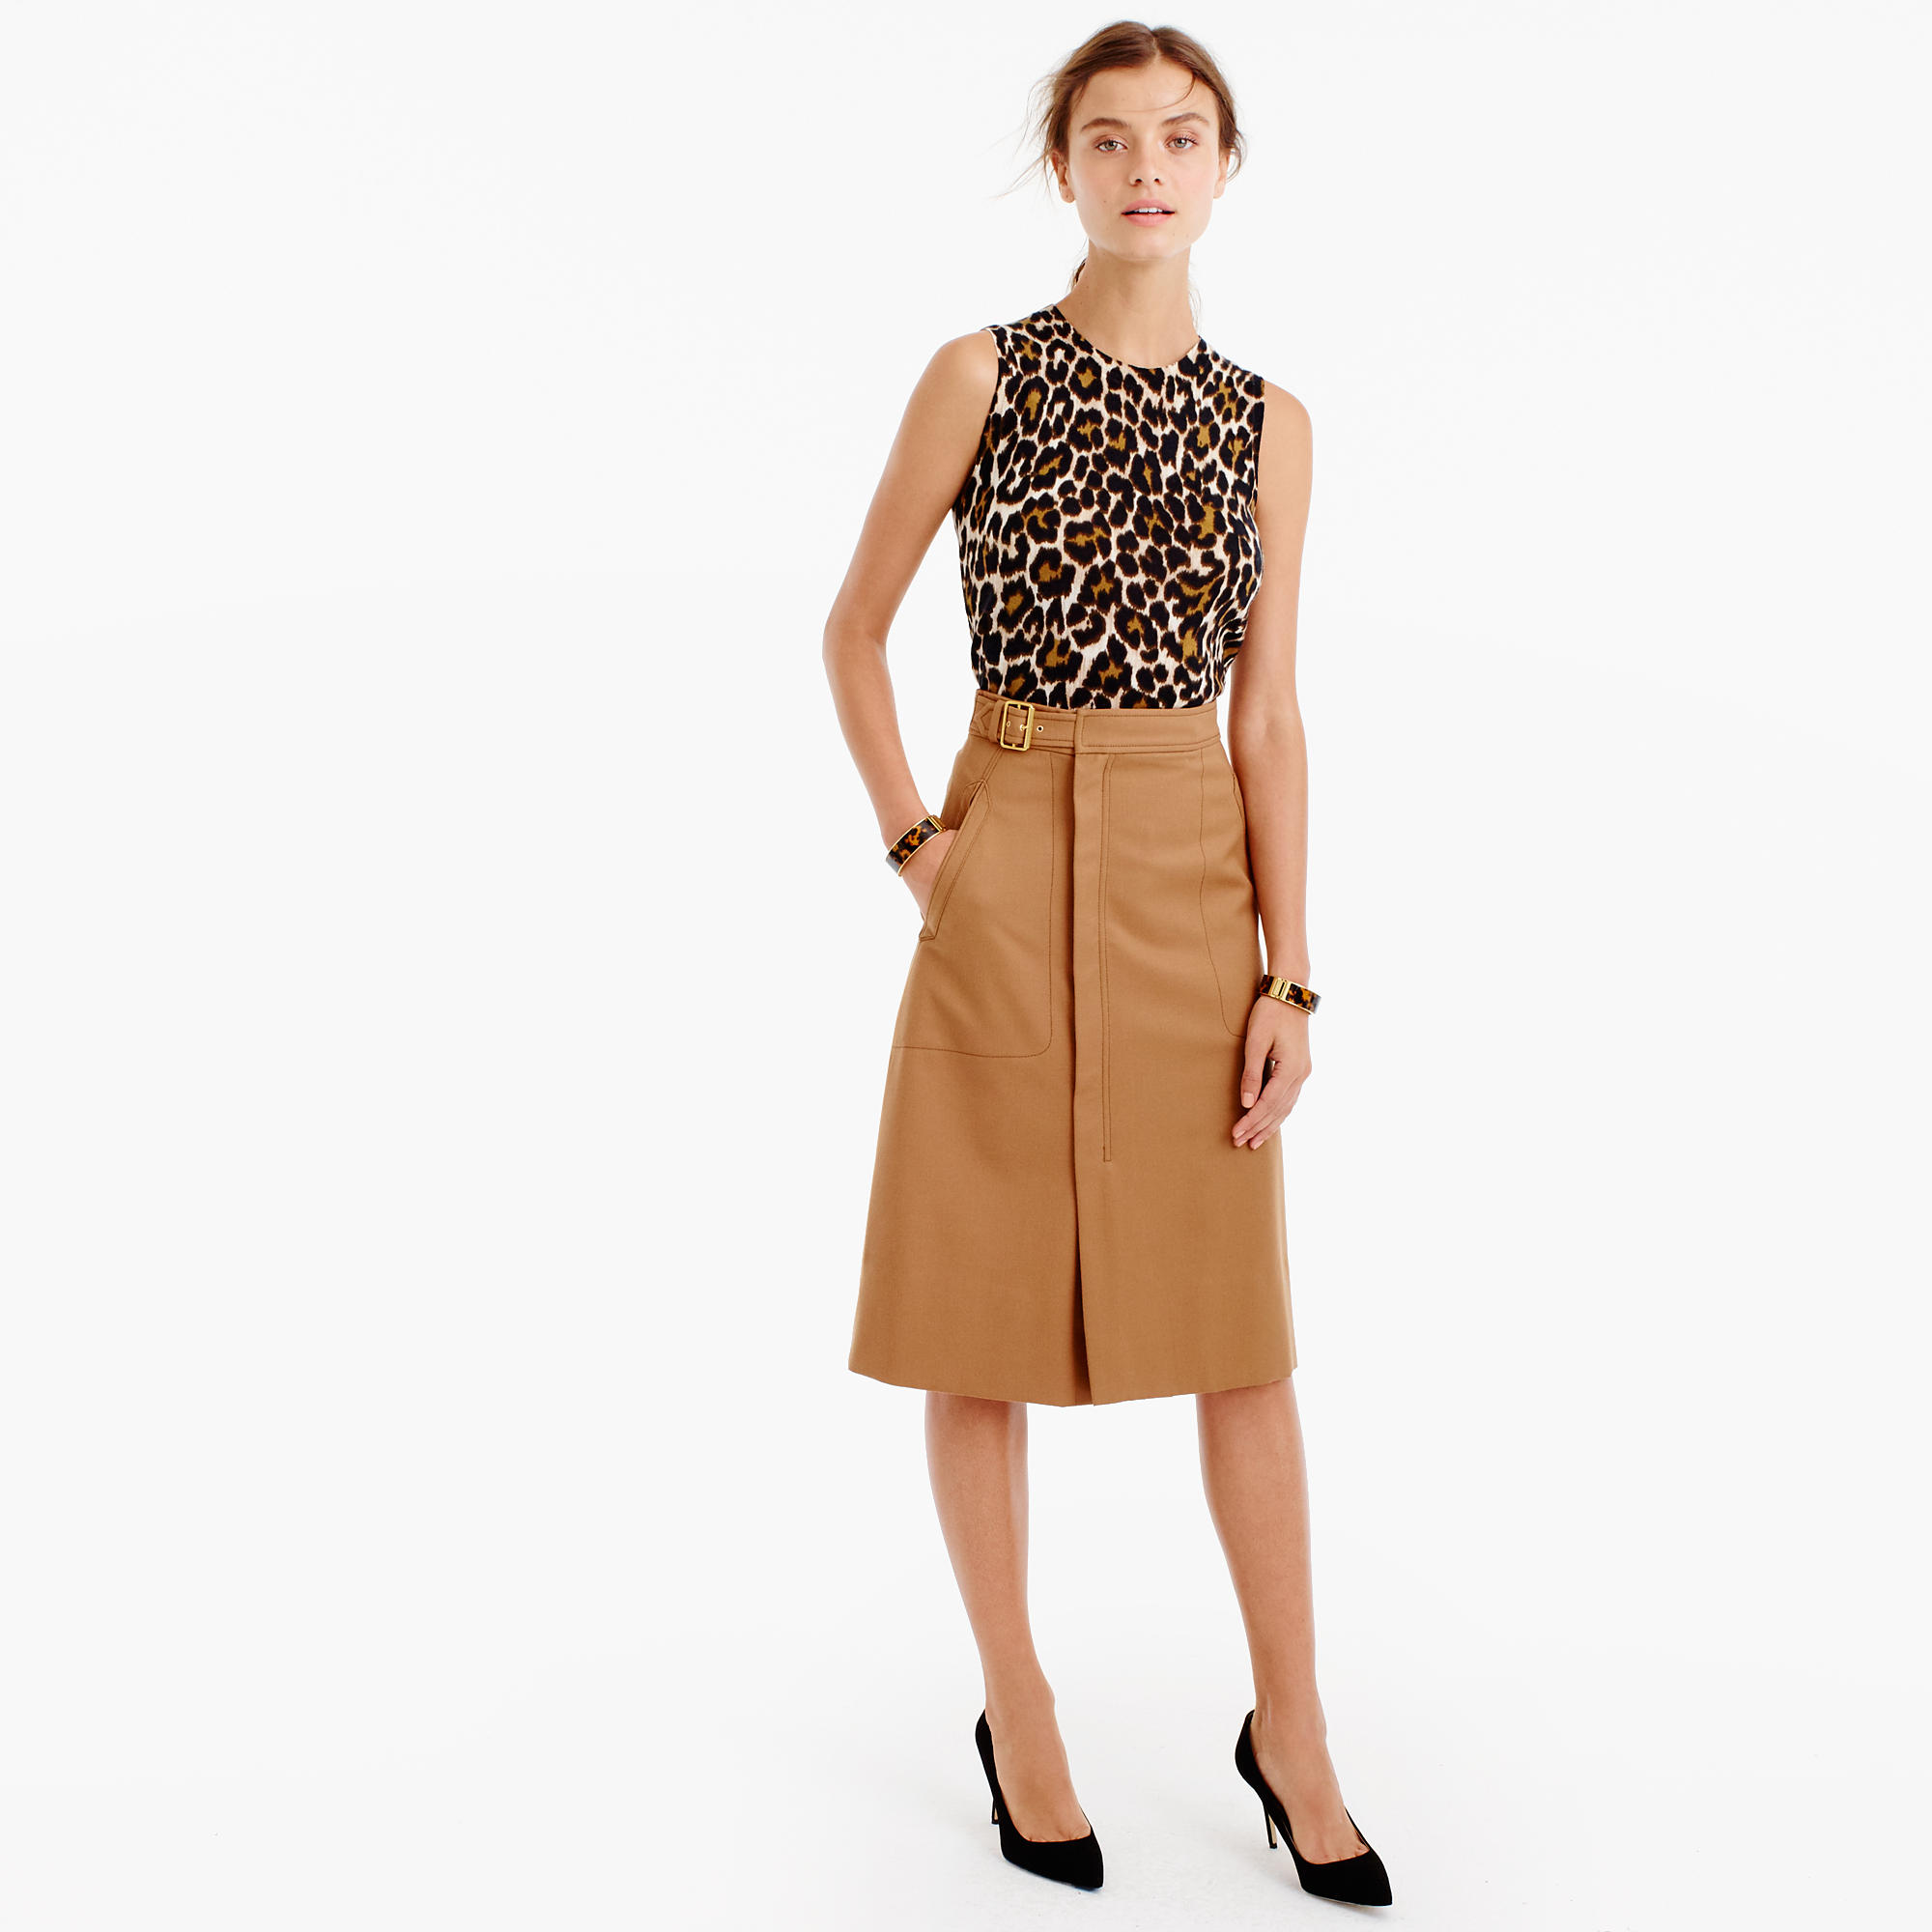 Belted A-line skirt : Women A-line/Midi | J.Crew